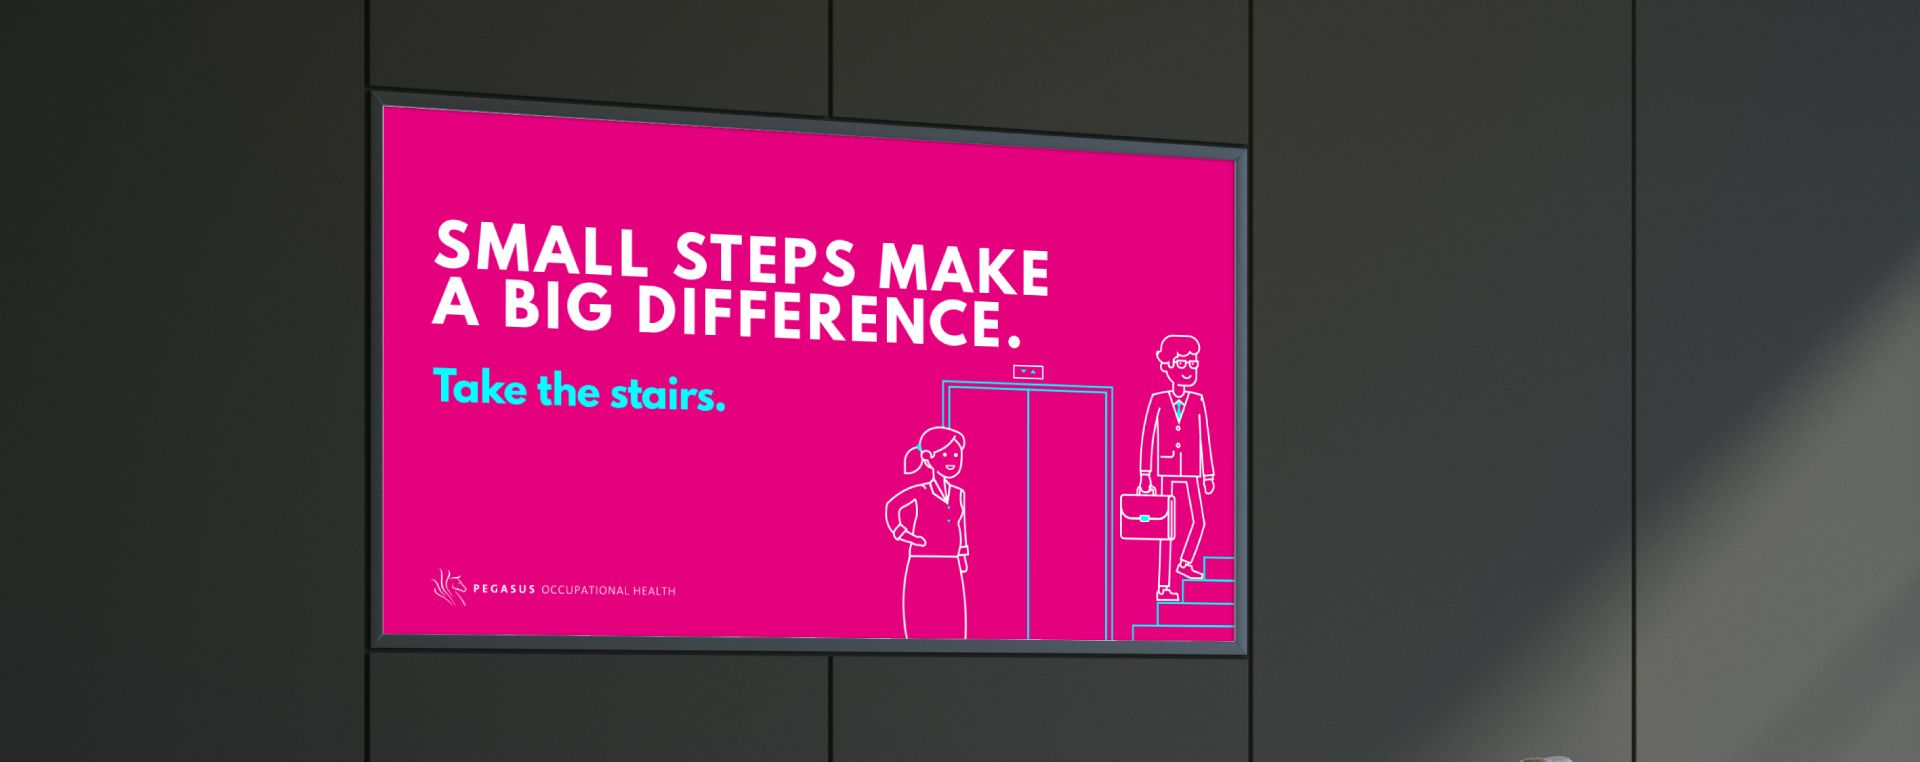 A bright digital display utilising an illustration suggesting employees use the stairs rather than waiting for an elevator.